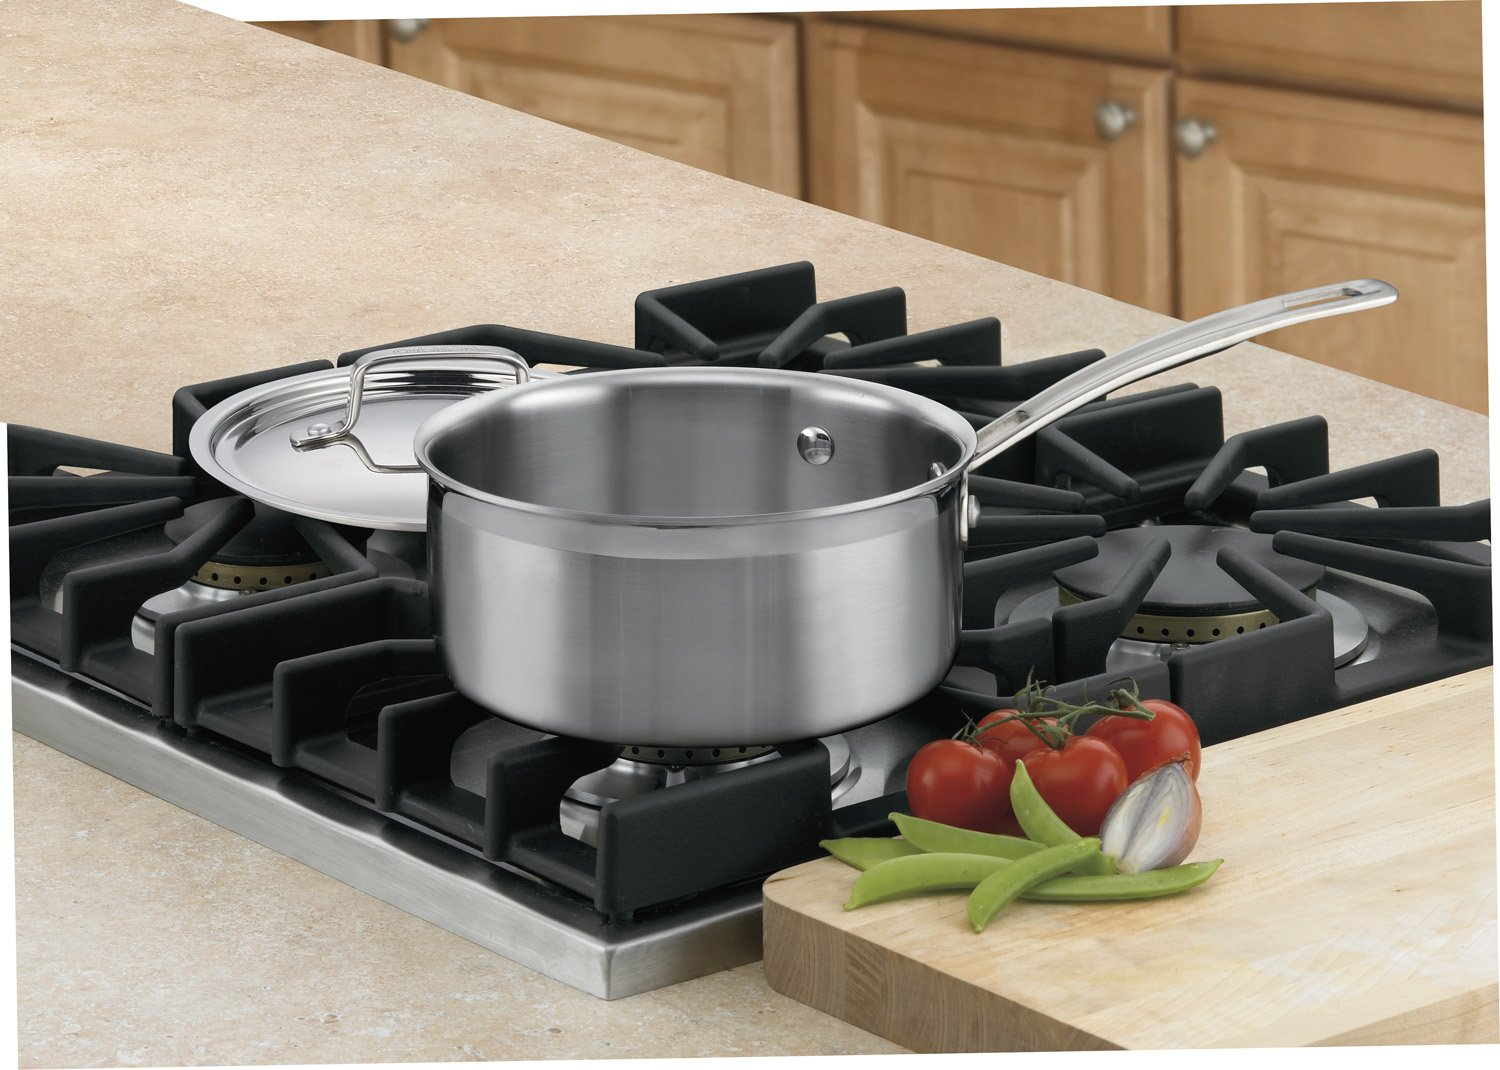 Cuisinart MCP19-18N MultiClad Pro Stainless Steel 2-Quart Saucepan with Cover by Cuisinart (Image #2)